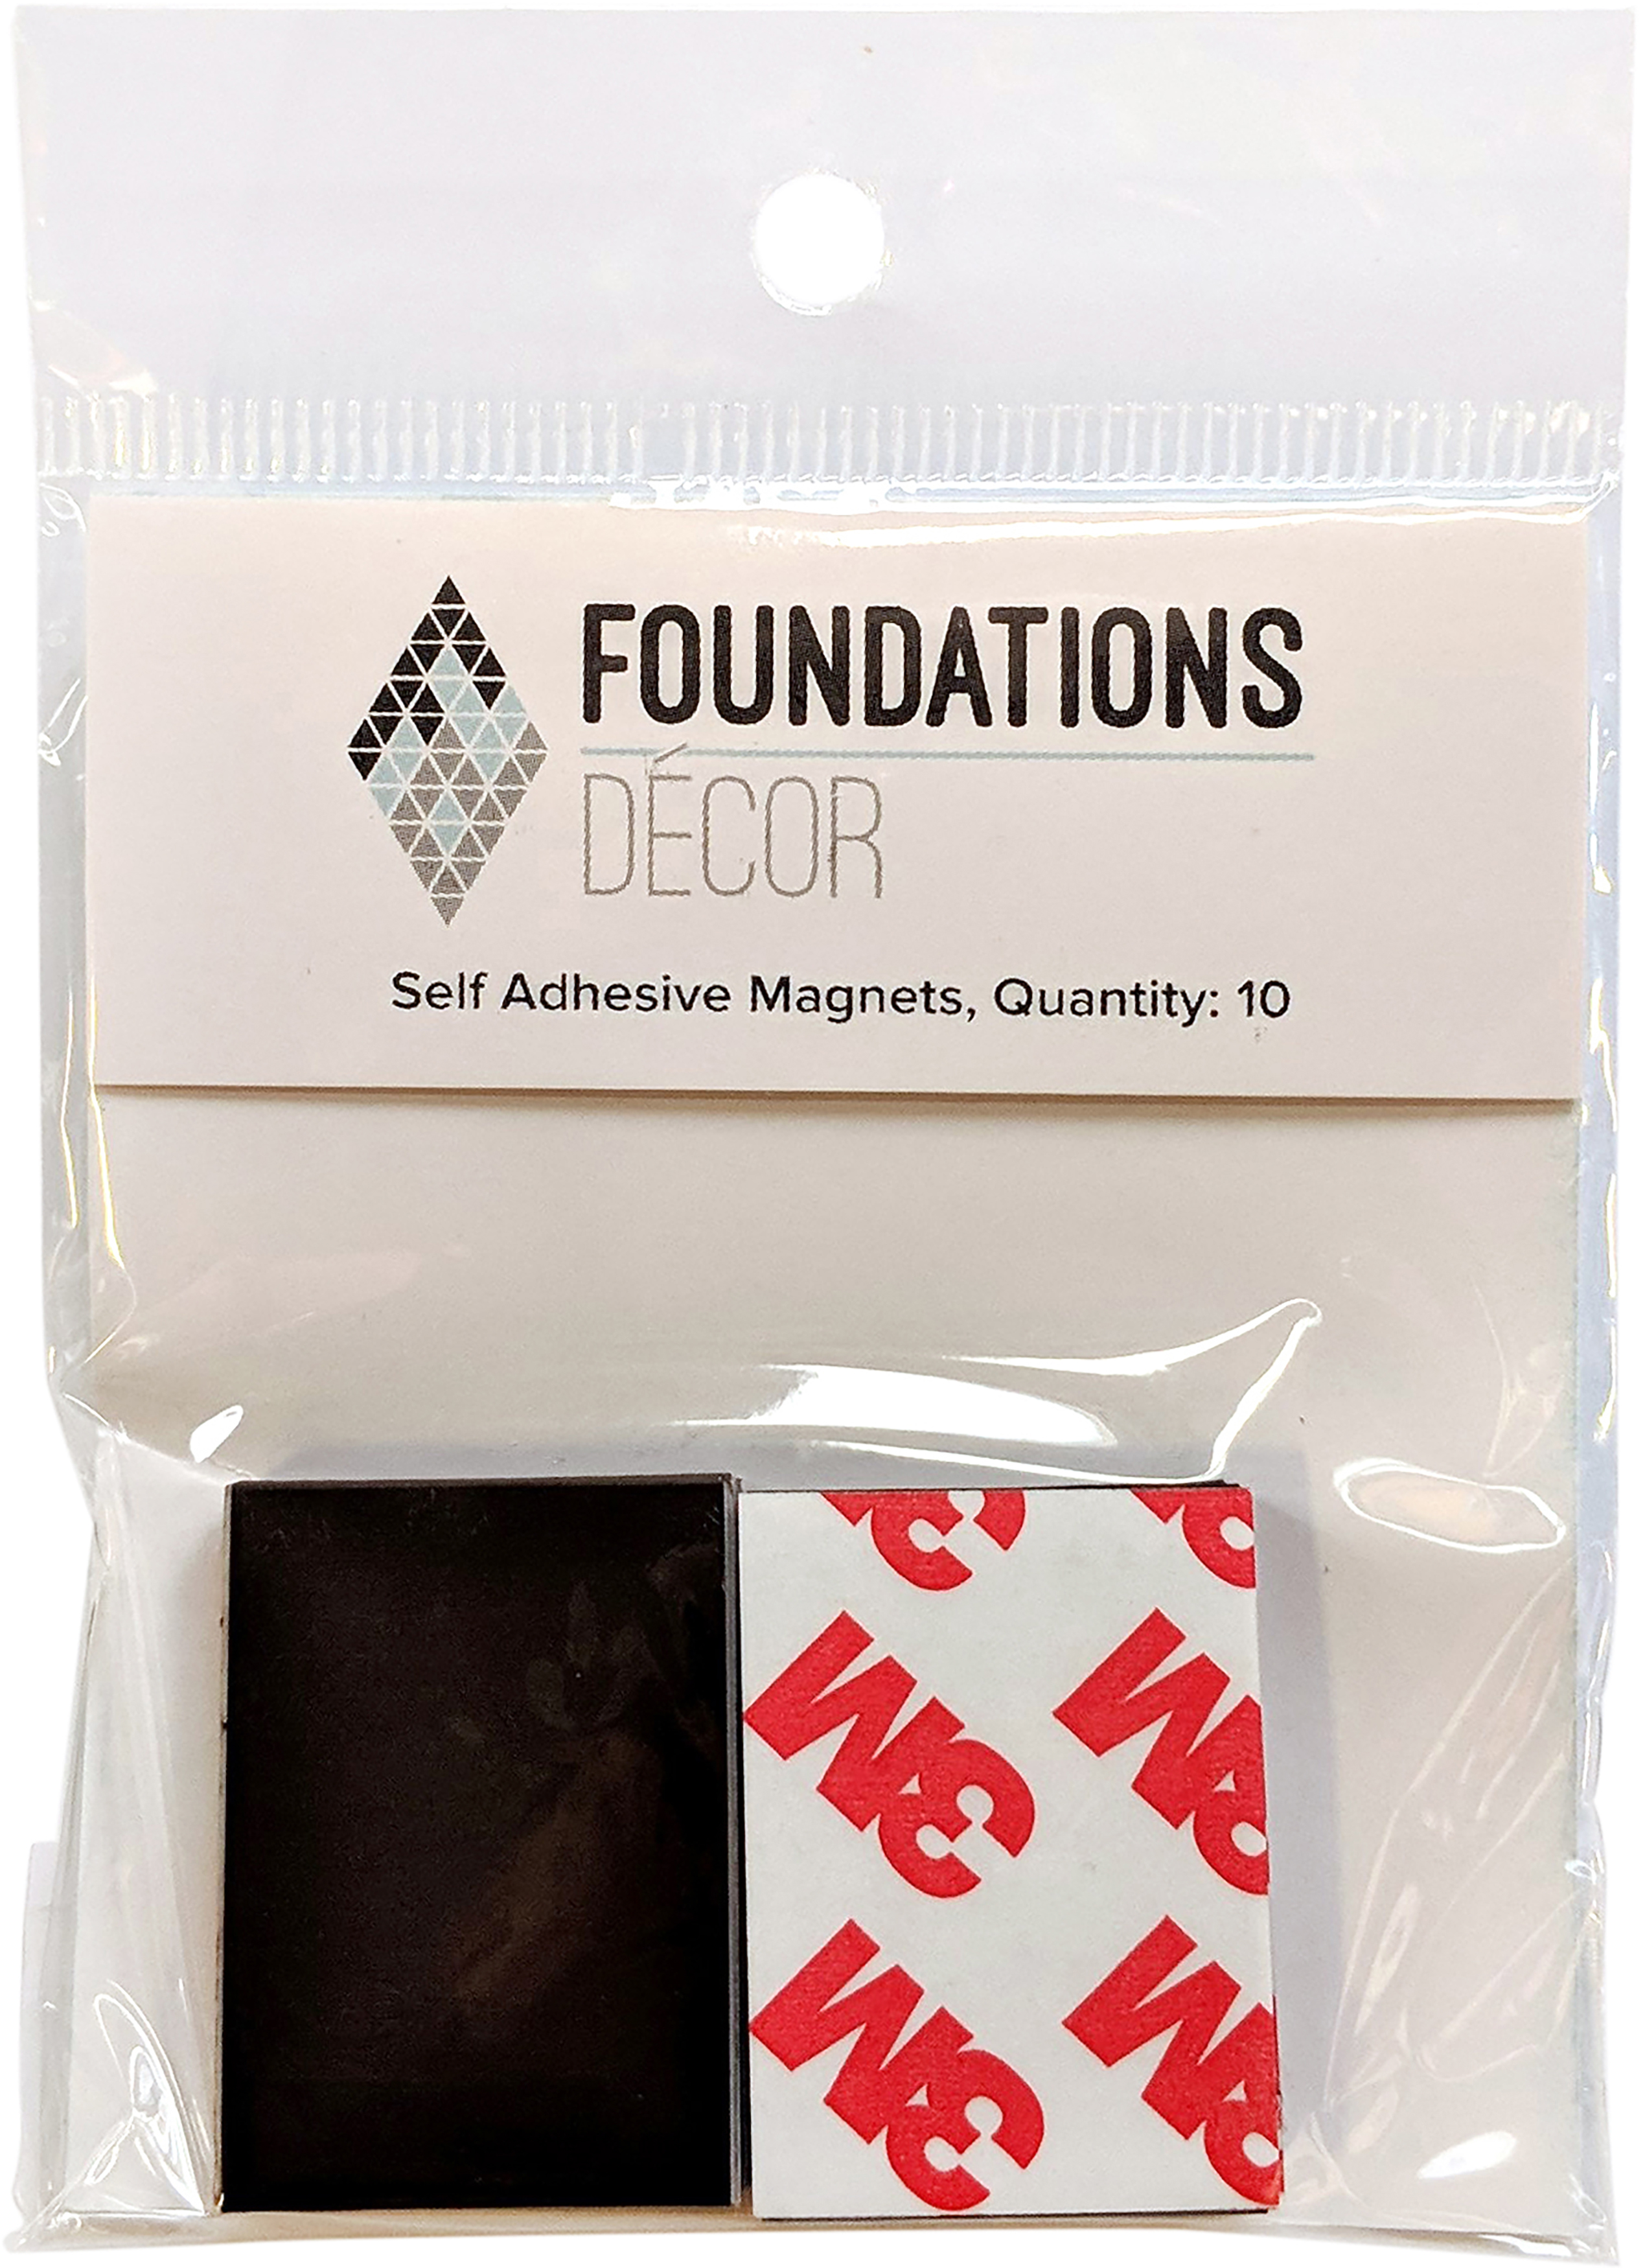 Foundations Decor Self-Adhesive Magnets 10/Pkg-